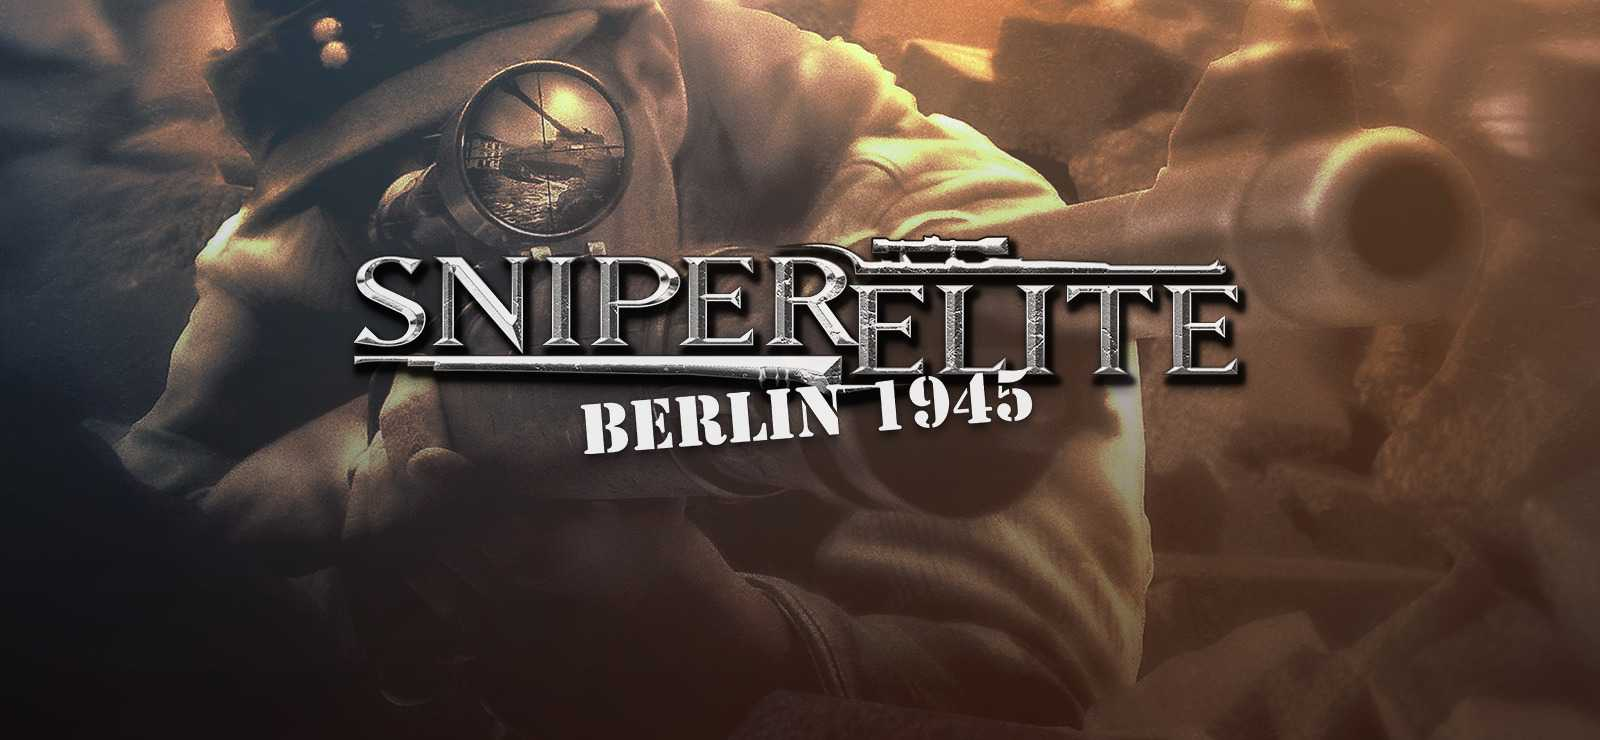 Sniper Elite Berlin 1945 Free Download